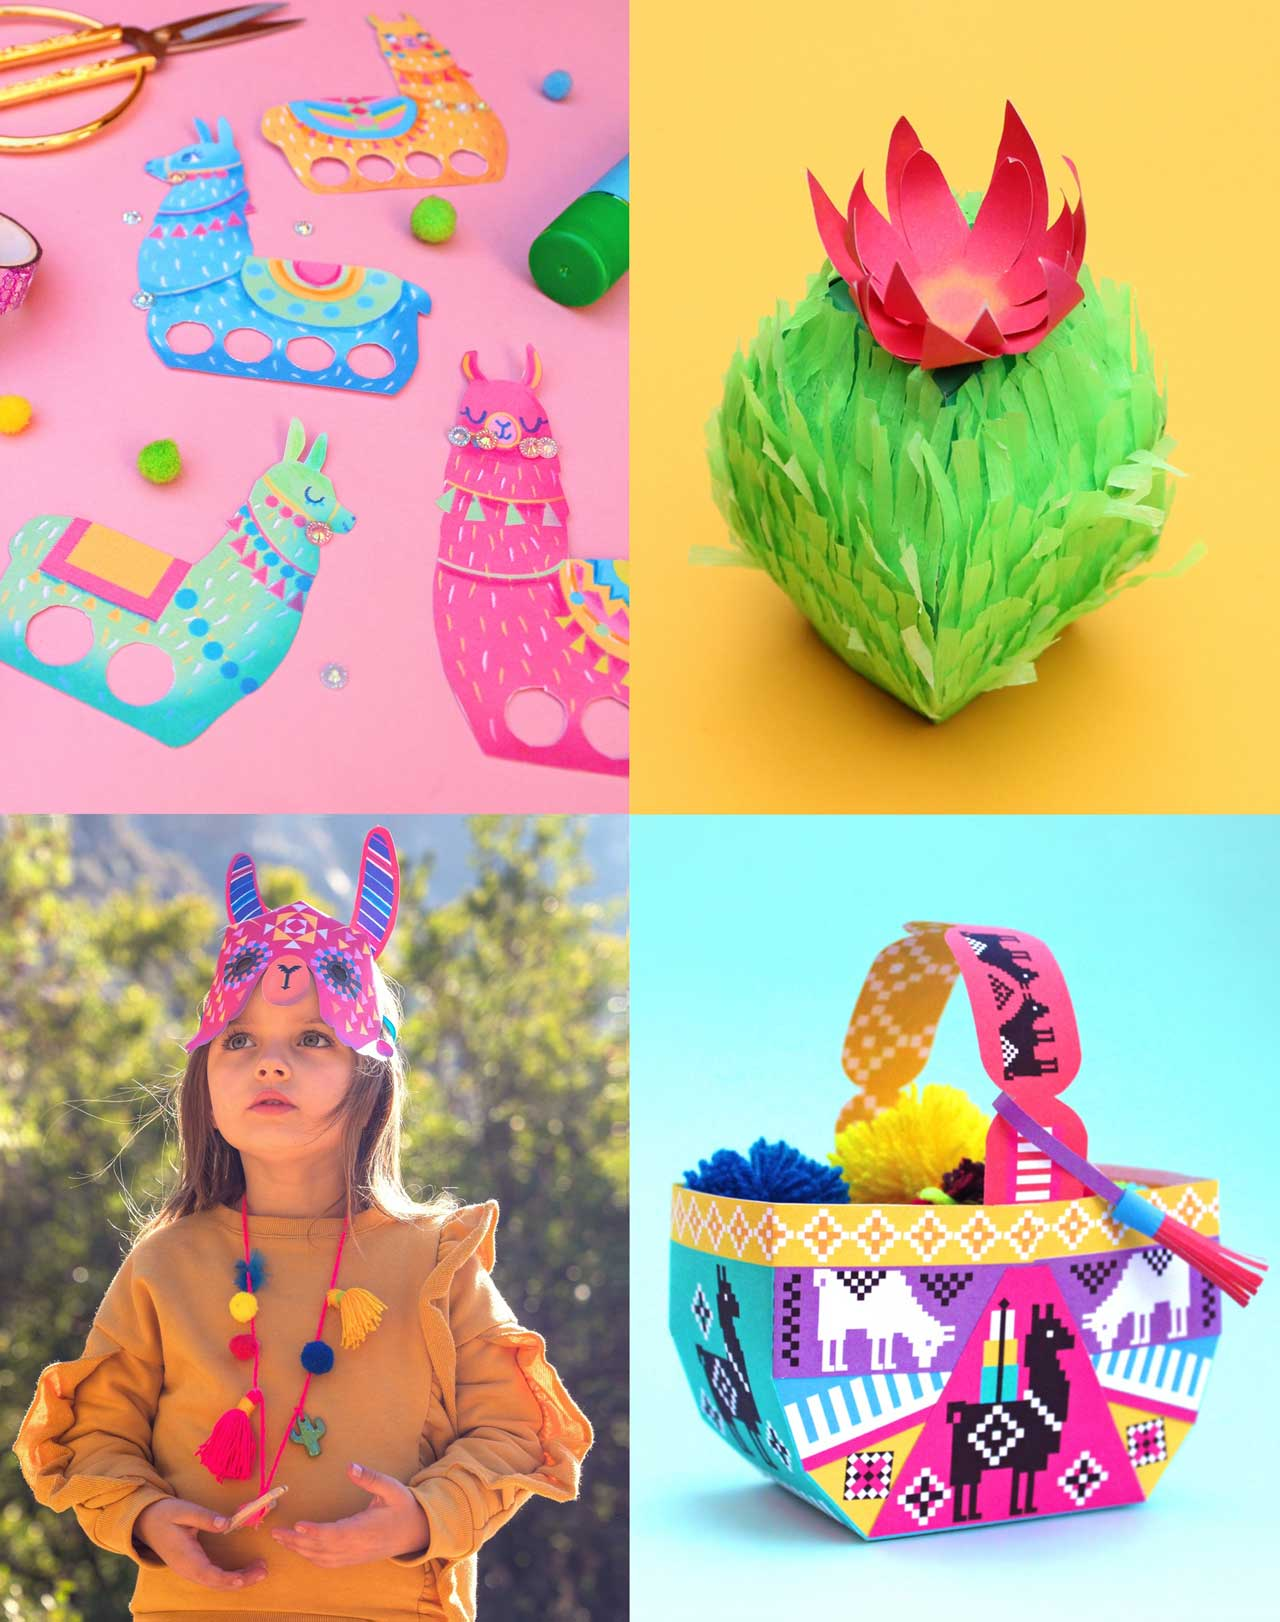 How to make pinata, llama finger puppets, masks and baskets from paper templates